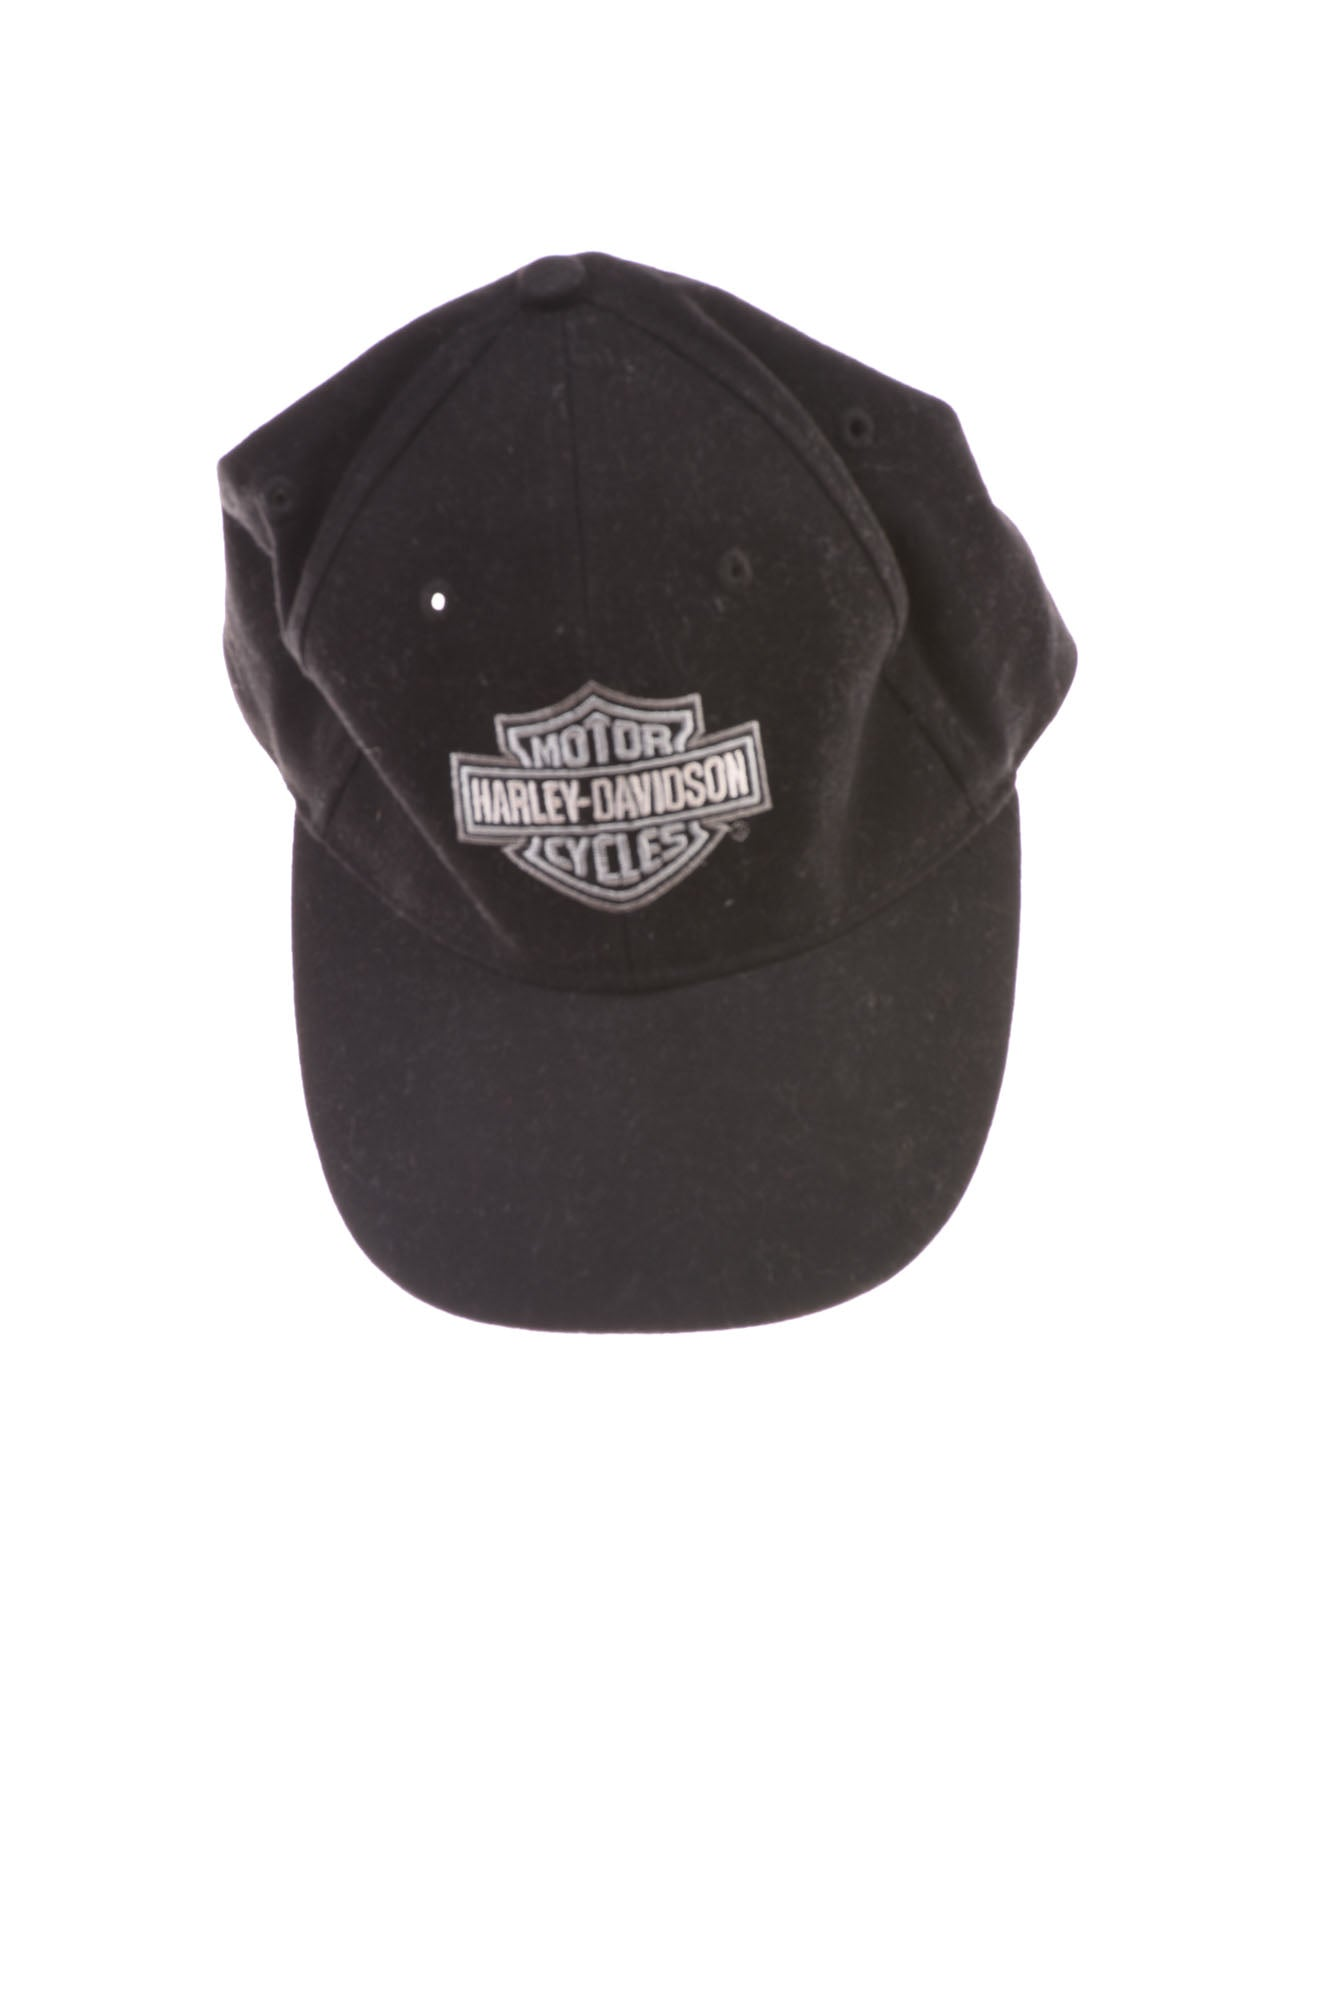 USED Harley Davidson Men s Hat One Size Black - Village Discount Outlet e5d44c01b39